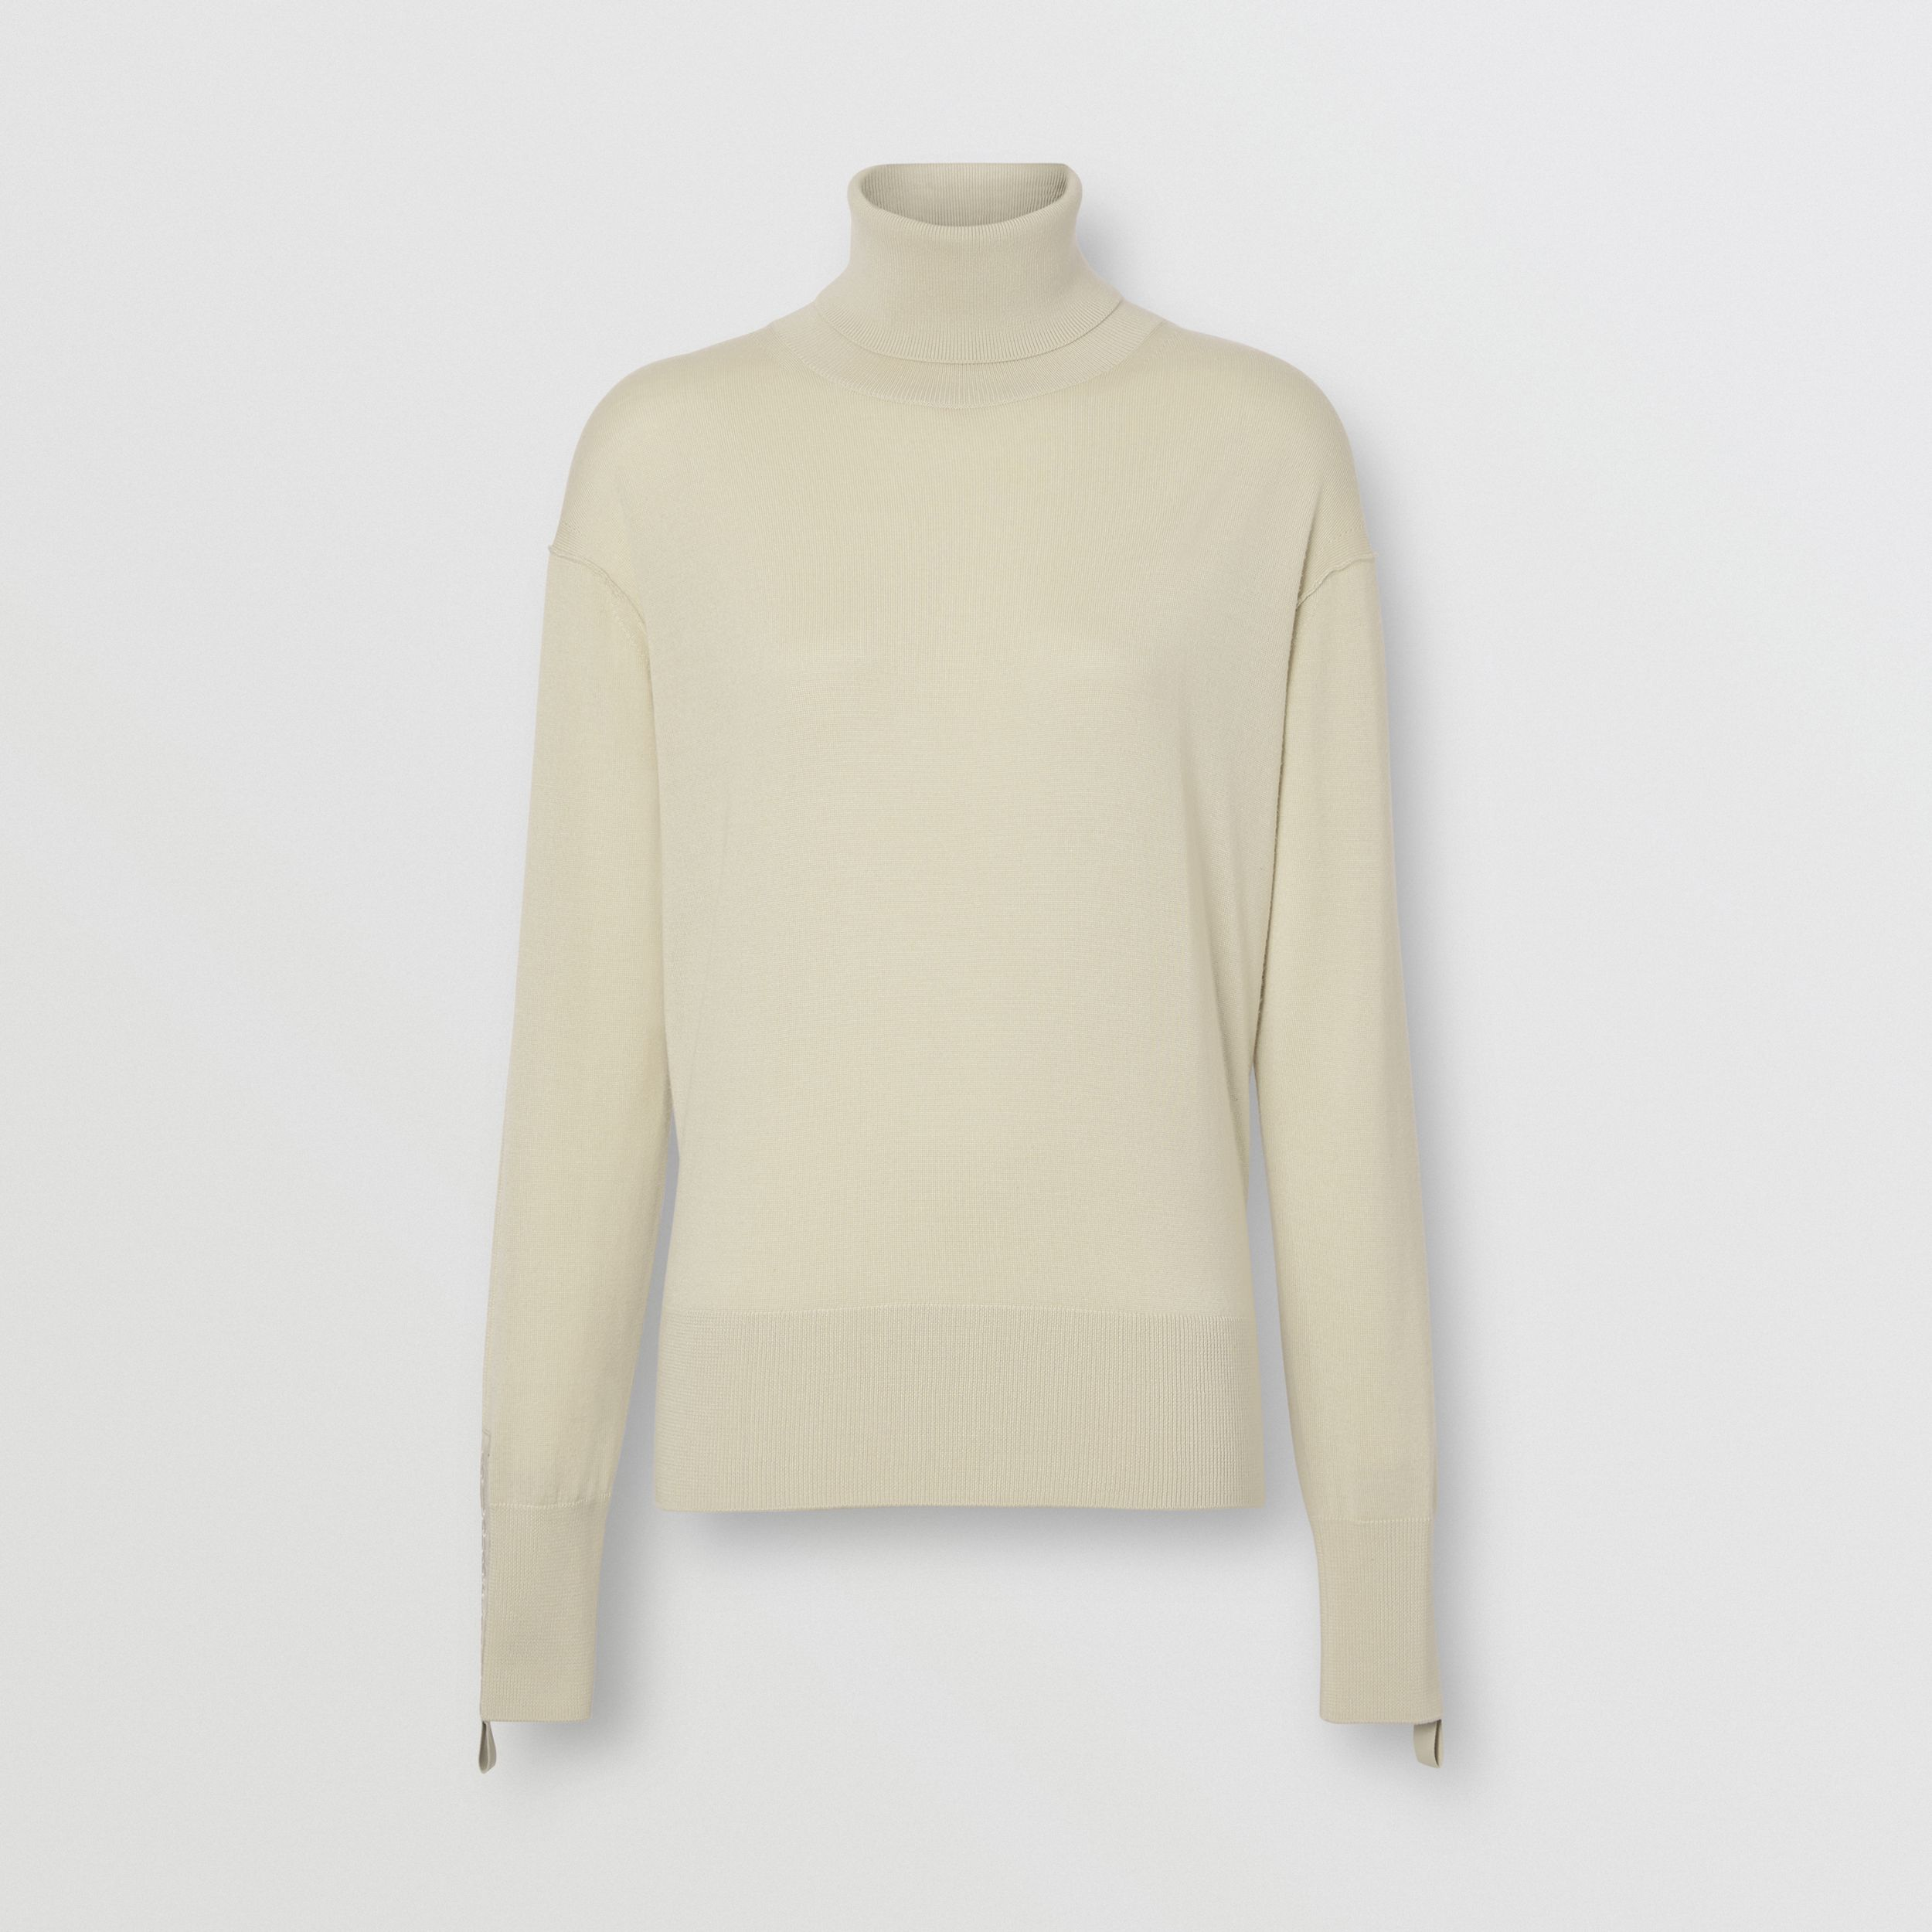 Logo Detail Merino Wool Silk Roll-neck Sweater in Pale Ochre - Women | Burberry - 4